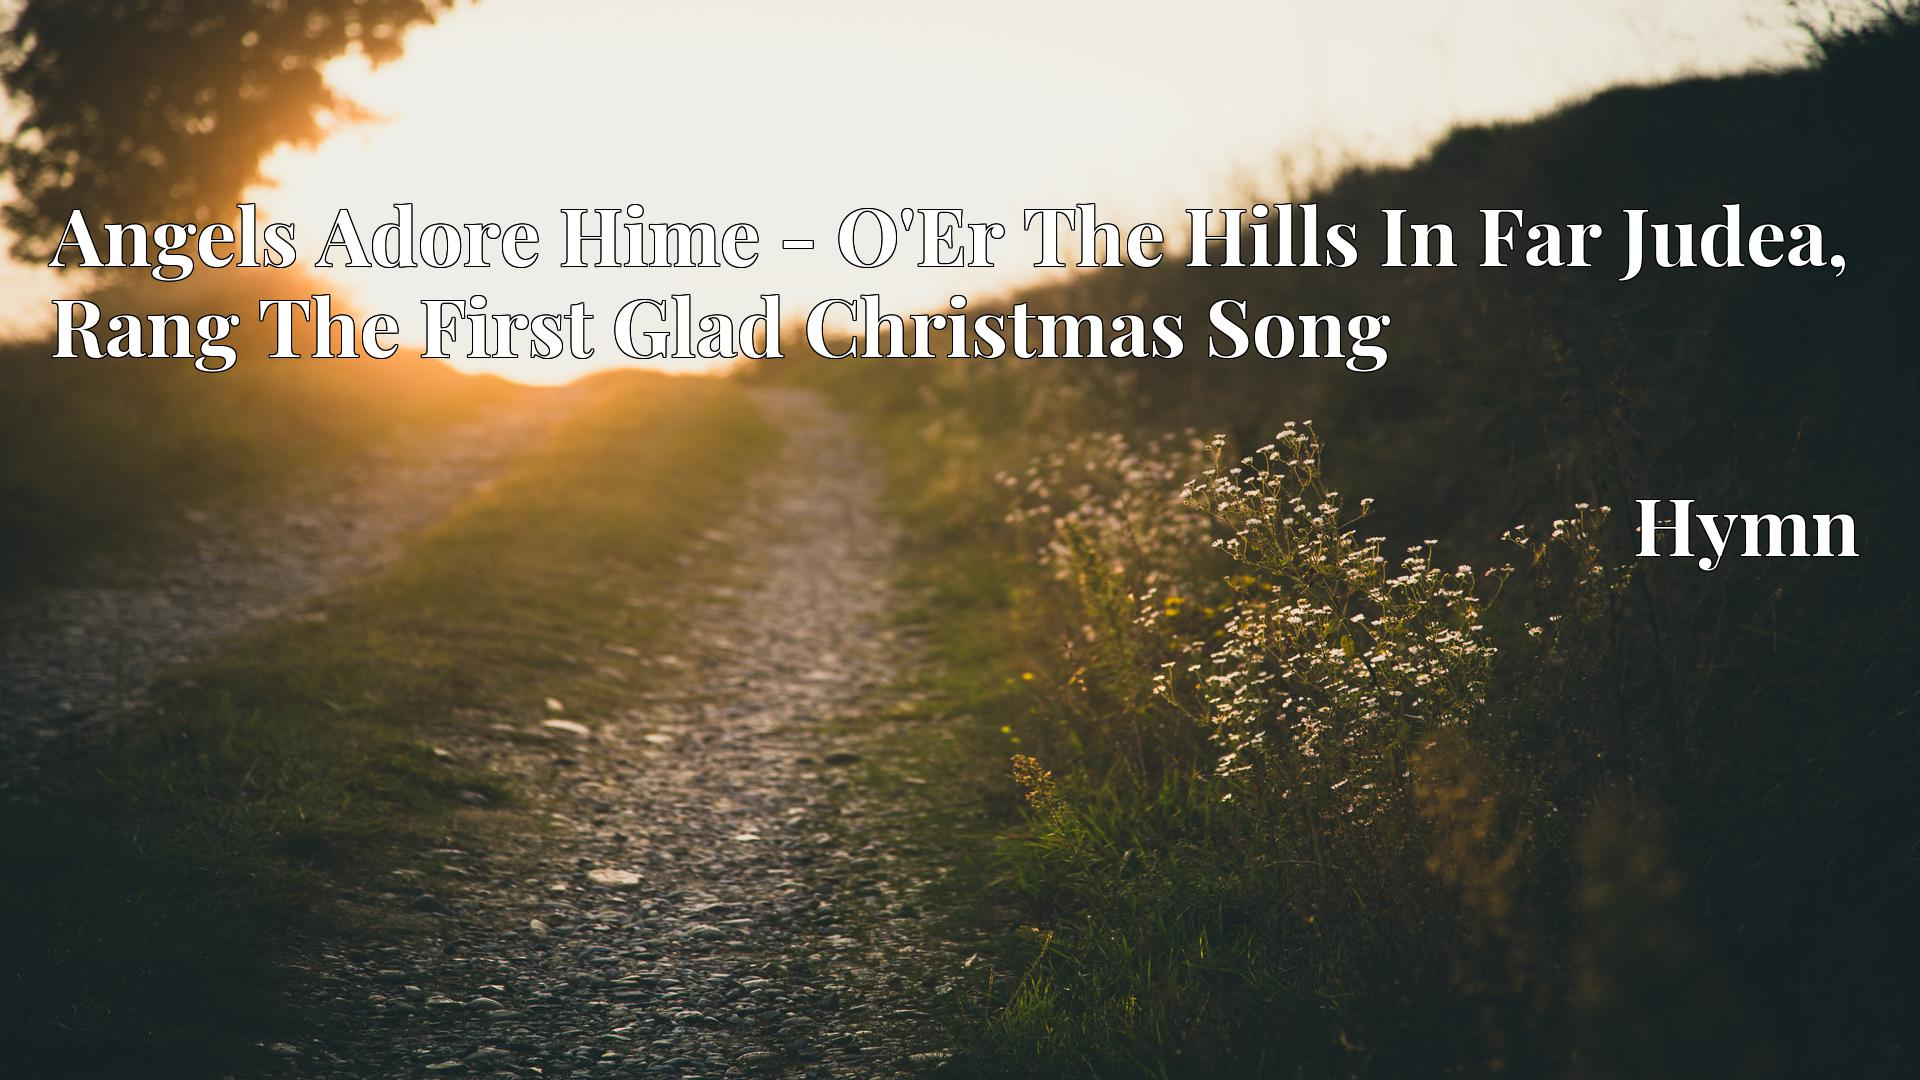 Angels Adore Hime - O'Er The Hills In Far Judea, Rang The First Glad Christmas Song - Hymn